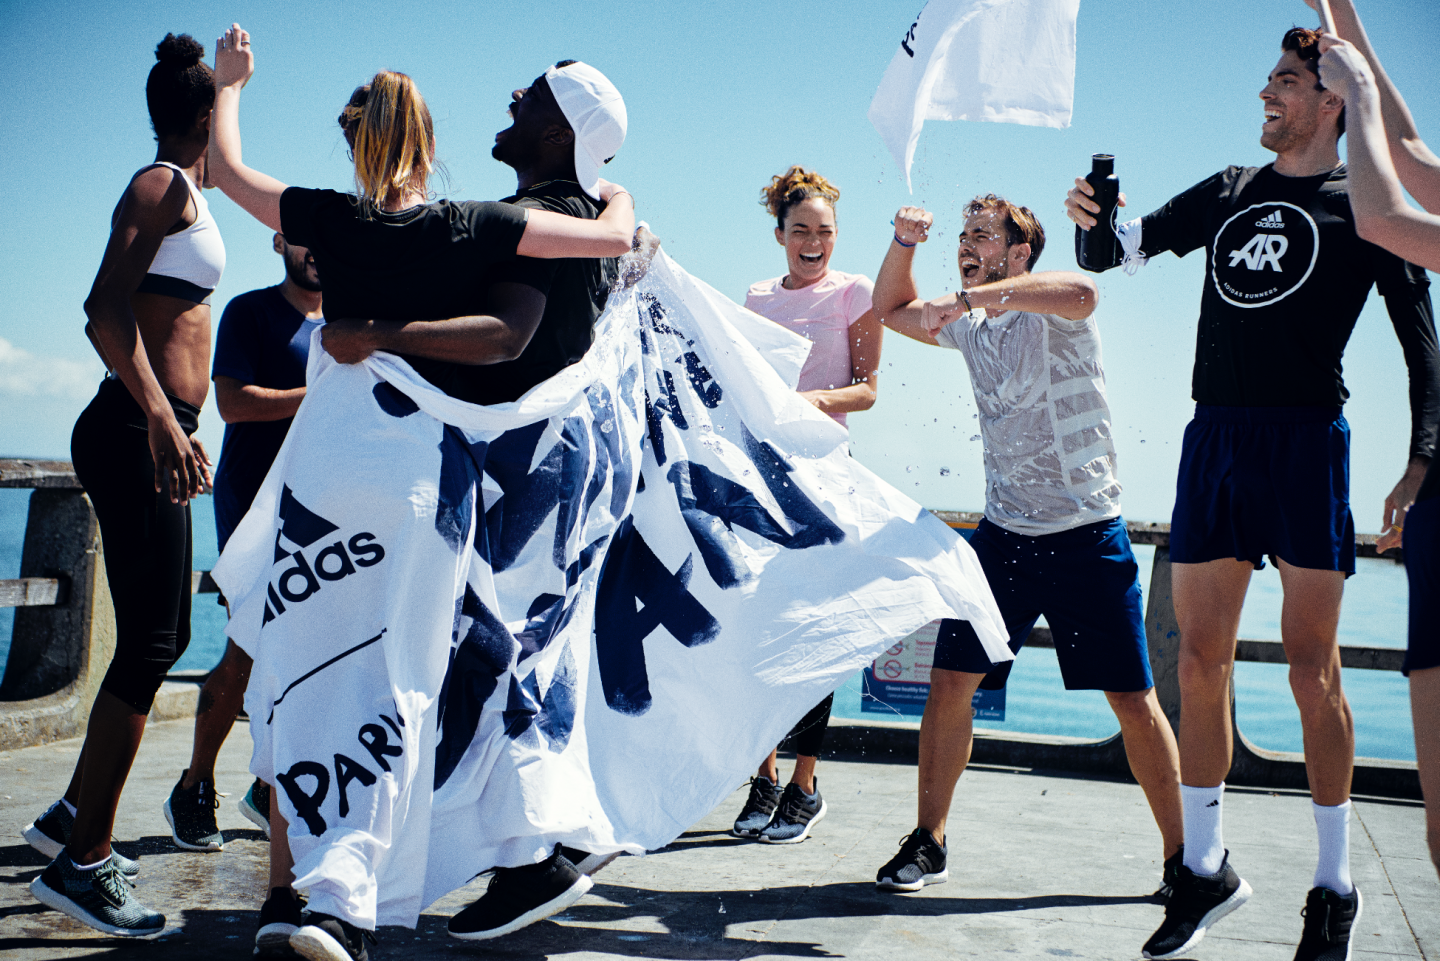 56a8380ae8 A World Race to Make Waves - The Story of Run for the Oceans